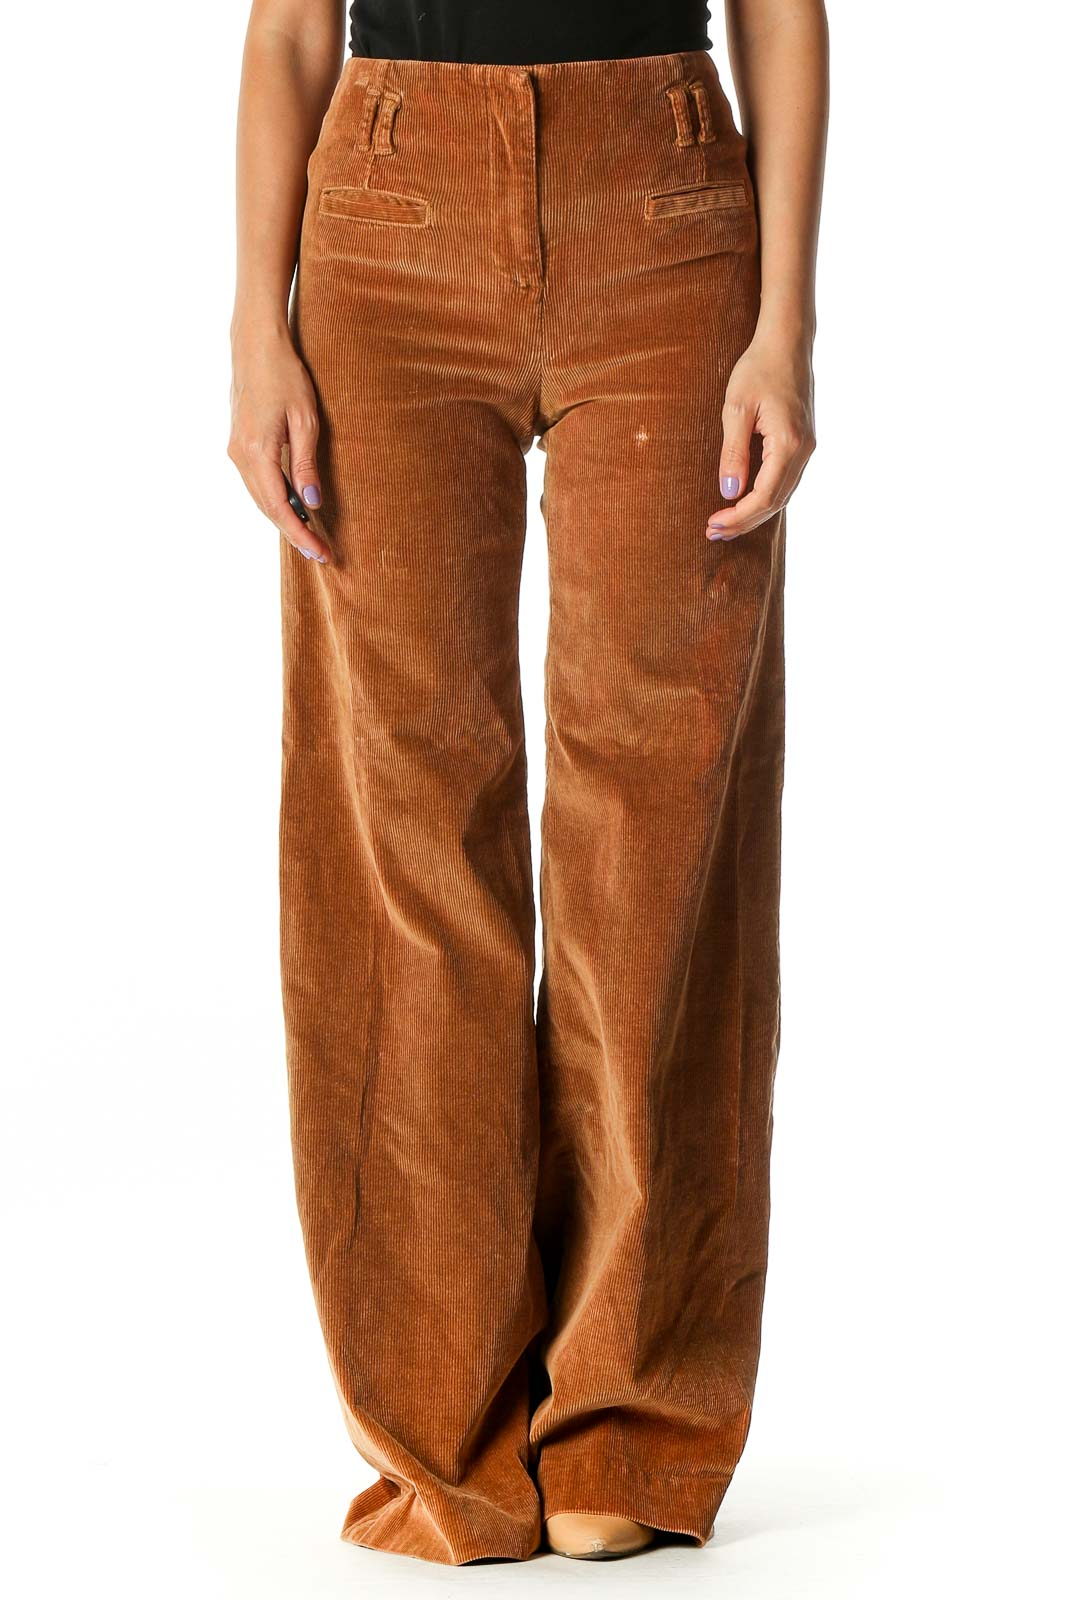 Brown Textured Casual Cargos Pants Front